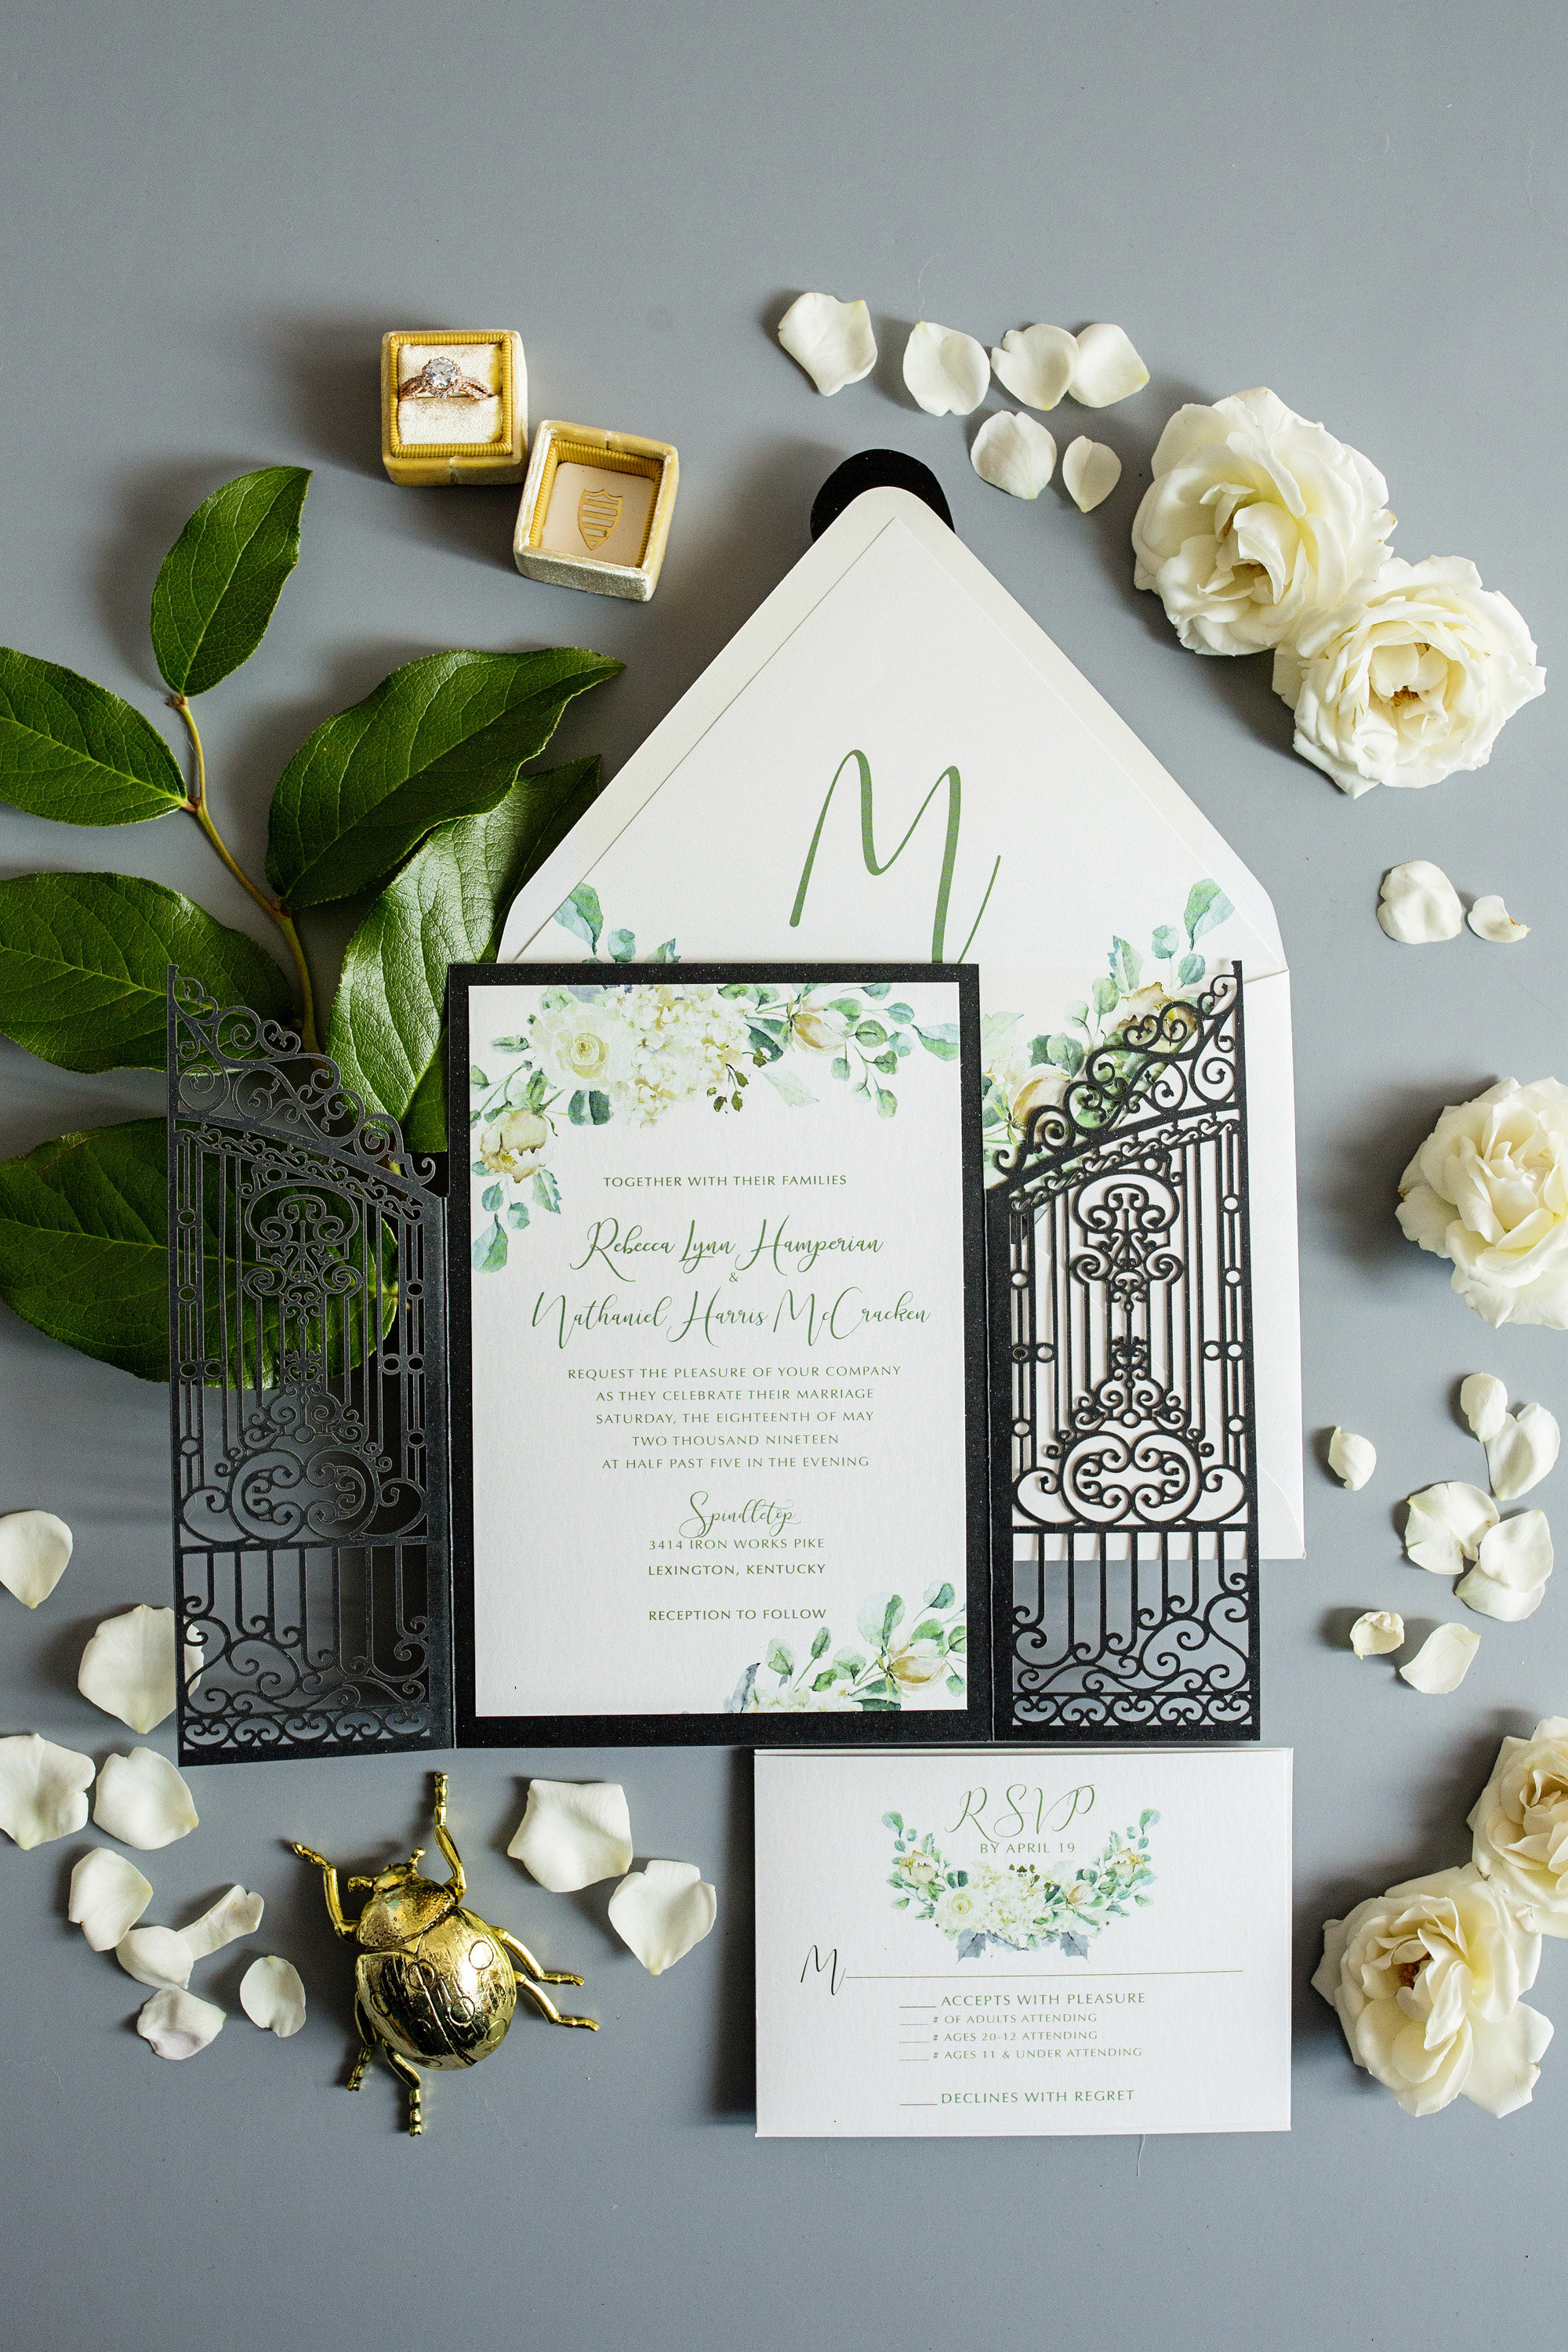 Seriously_Sabrina_Photography_Commercial_Simply_Done_Invites_2019_March_049